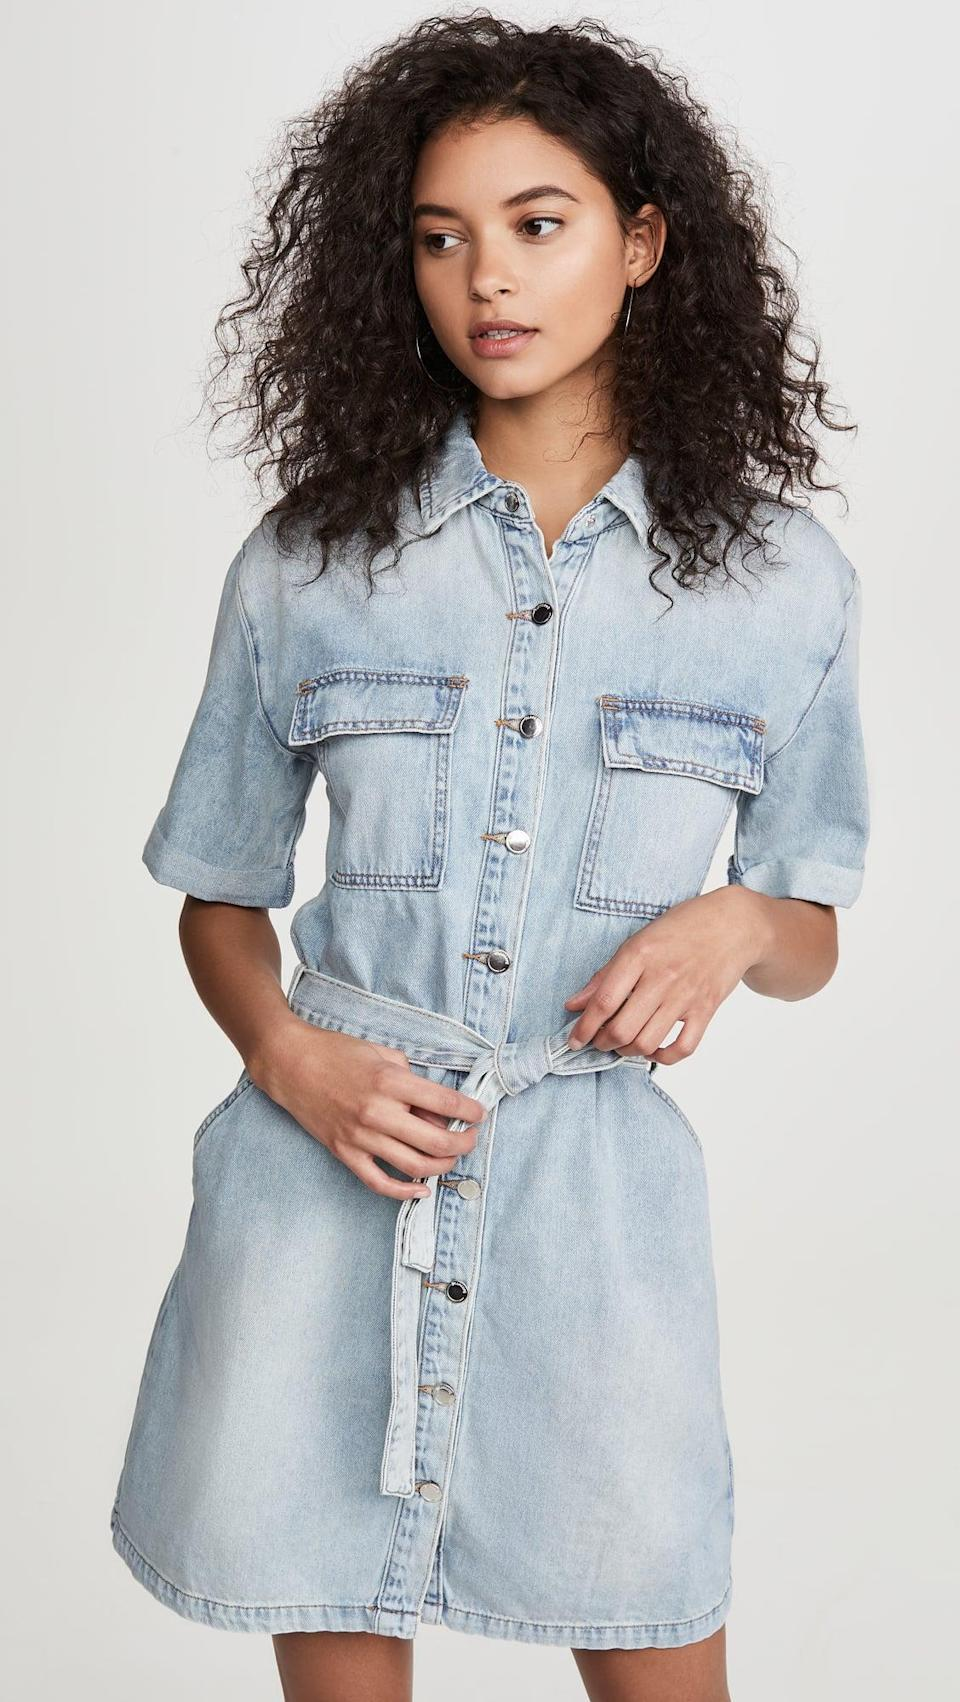 "<p>Your friends will want to know where this chic <a href=""https://www.popsugar.com/buy/Blank-Denim-Carribean-Blue-Dress-582006?p_name=Blank%20Denim%20Carribean%20Blue%20Dress&retailer=shopbop.com&pid=582006&price=98&evar1=fab%3Aus&evar9=35329485&evar98=https%3A%2F%2Fwww.popsugar.com%2Ffashion%2Fphoto-gallery%2F35329485%2Fimage%2F47550212%2FBlank-Denim-Carribean-Blue-Dress&list1=shopping%2Cdenim%2Csummer%20fashion%2Cfashion%20shopping&prop13=mobile&pdata=1"" class=""link rapid-noclick-resp"" rel=""nofollow noopener"" target=""_blank"" data-ylk=""slk:Blank Denim Carribean Blue Dress"">Blank Denim Carribean Blue Dress</a> ($98) is from.</p>"